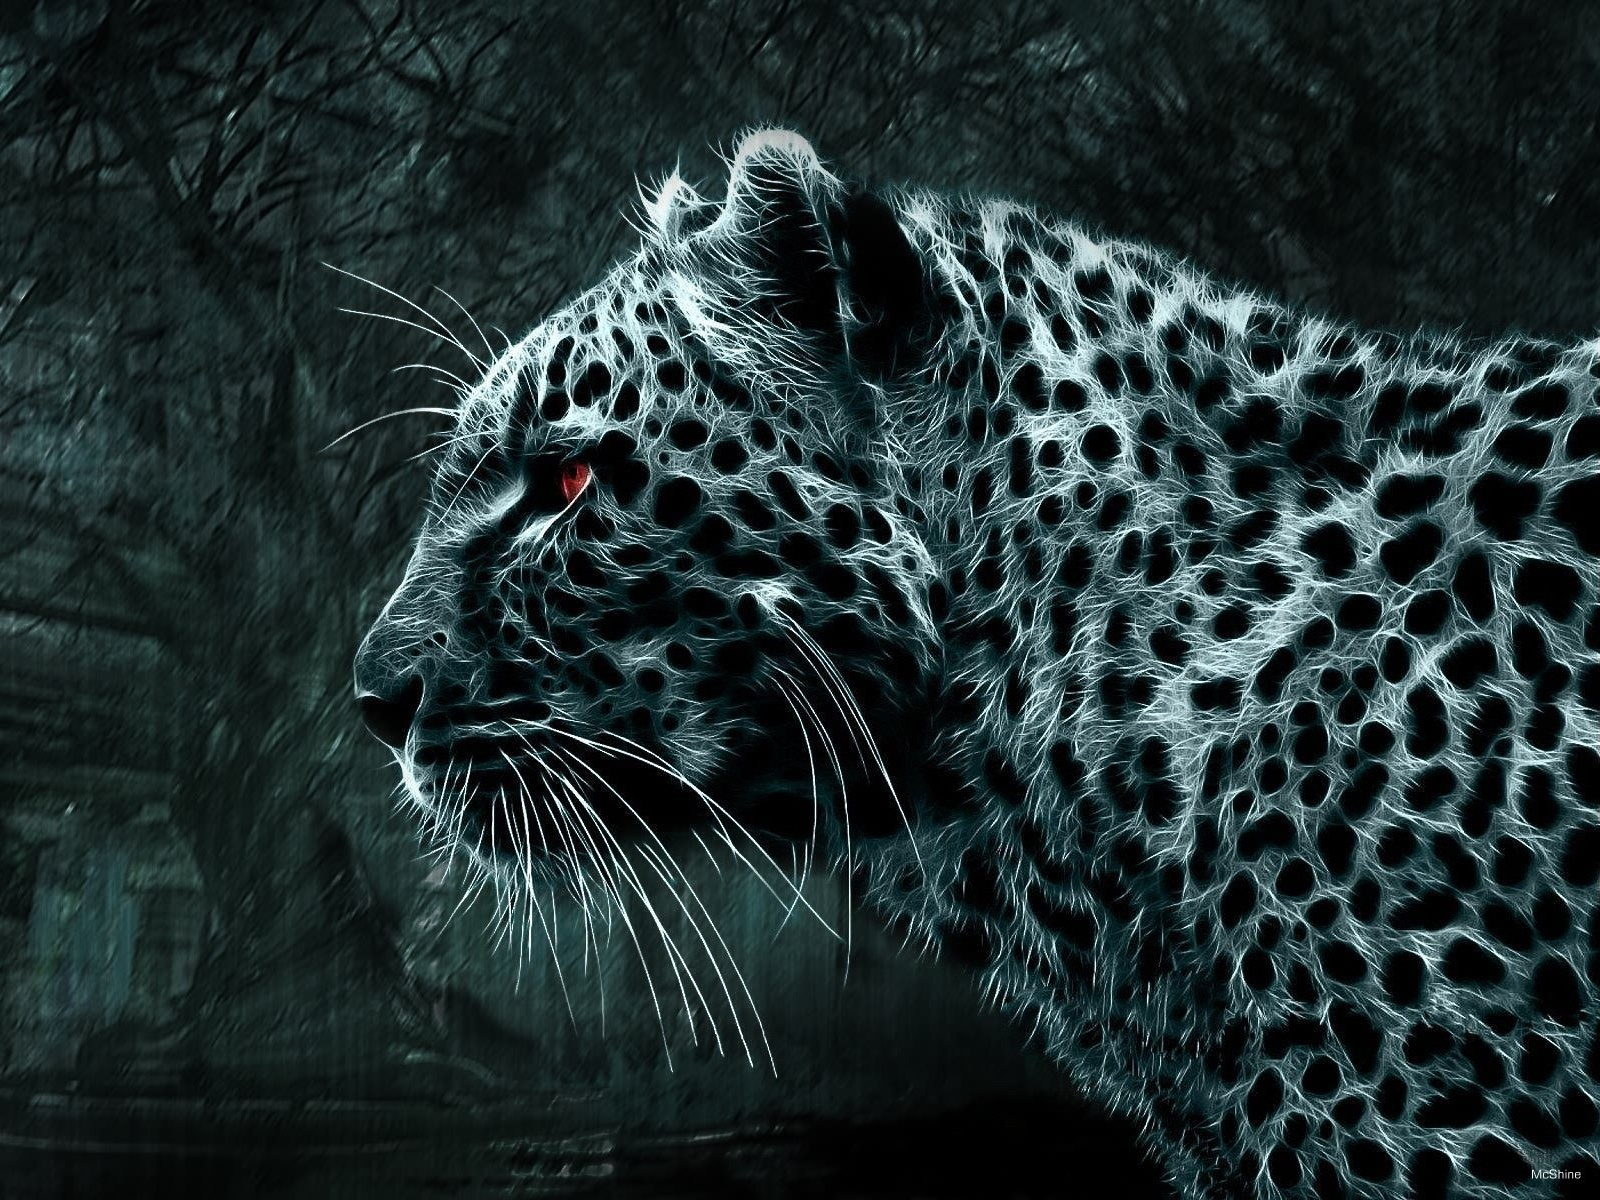 Leopard artwork